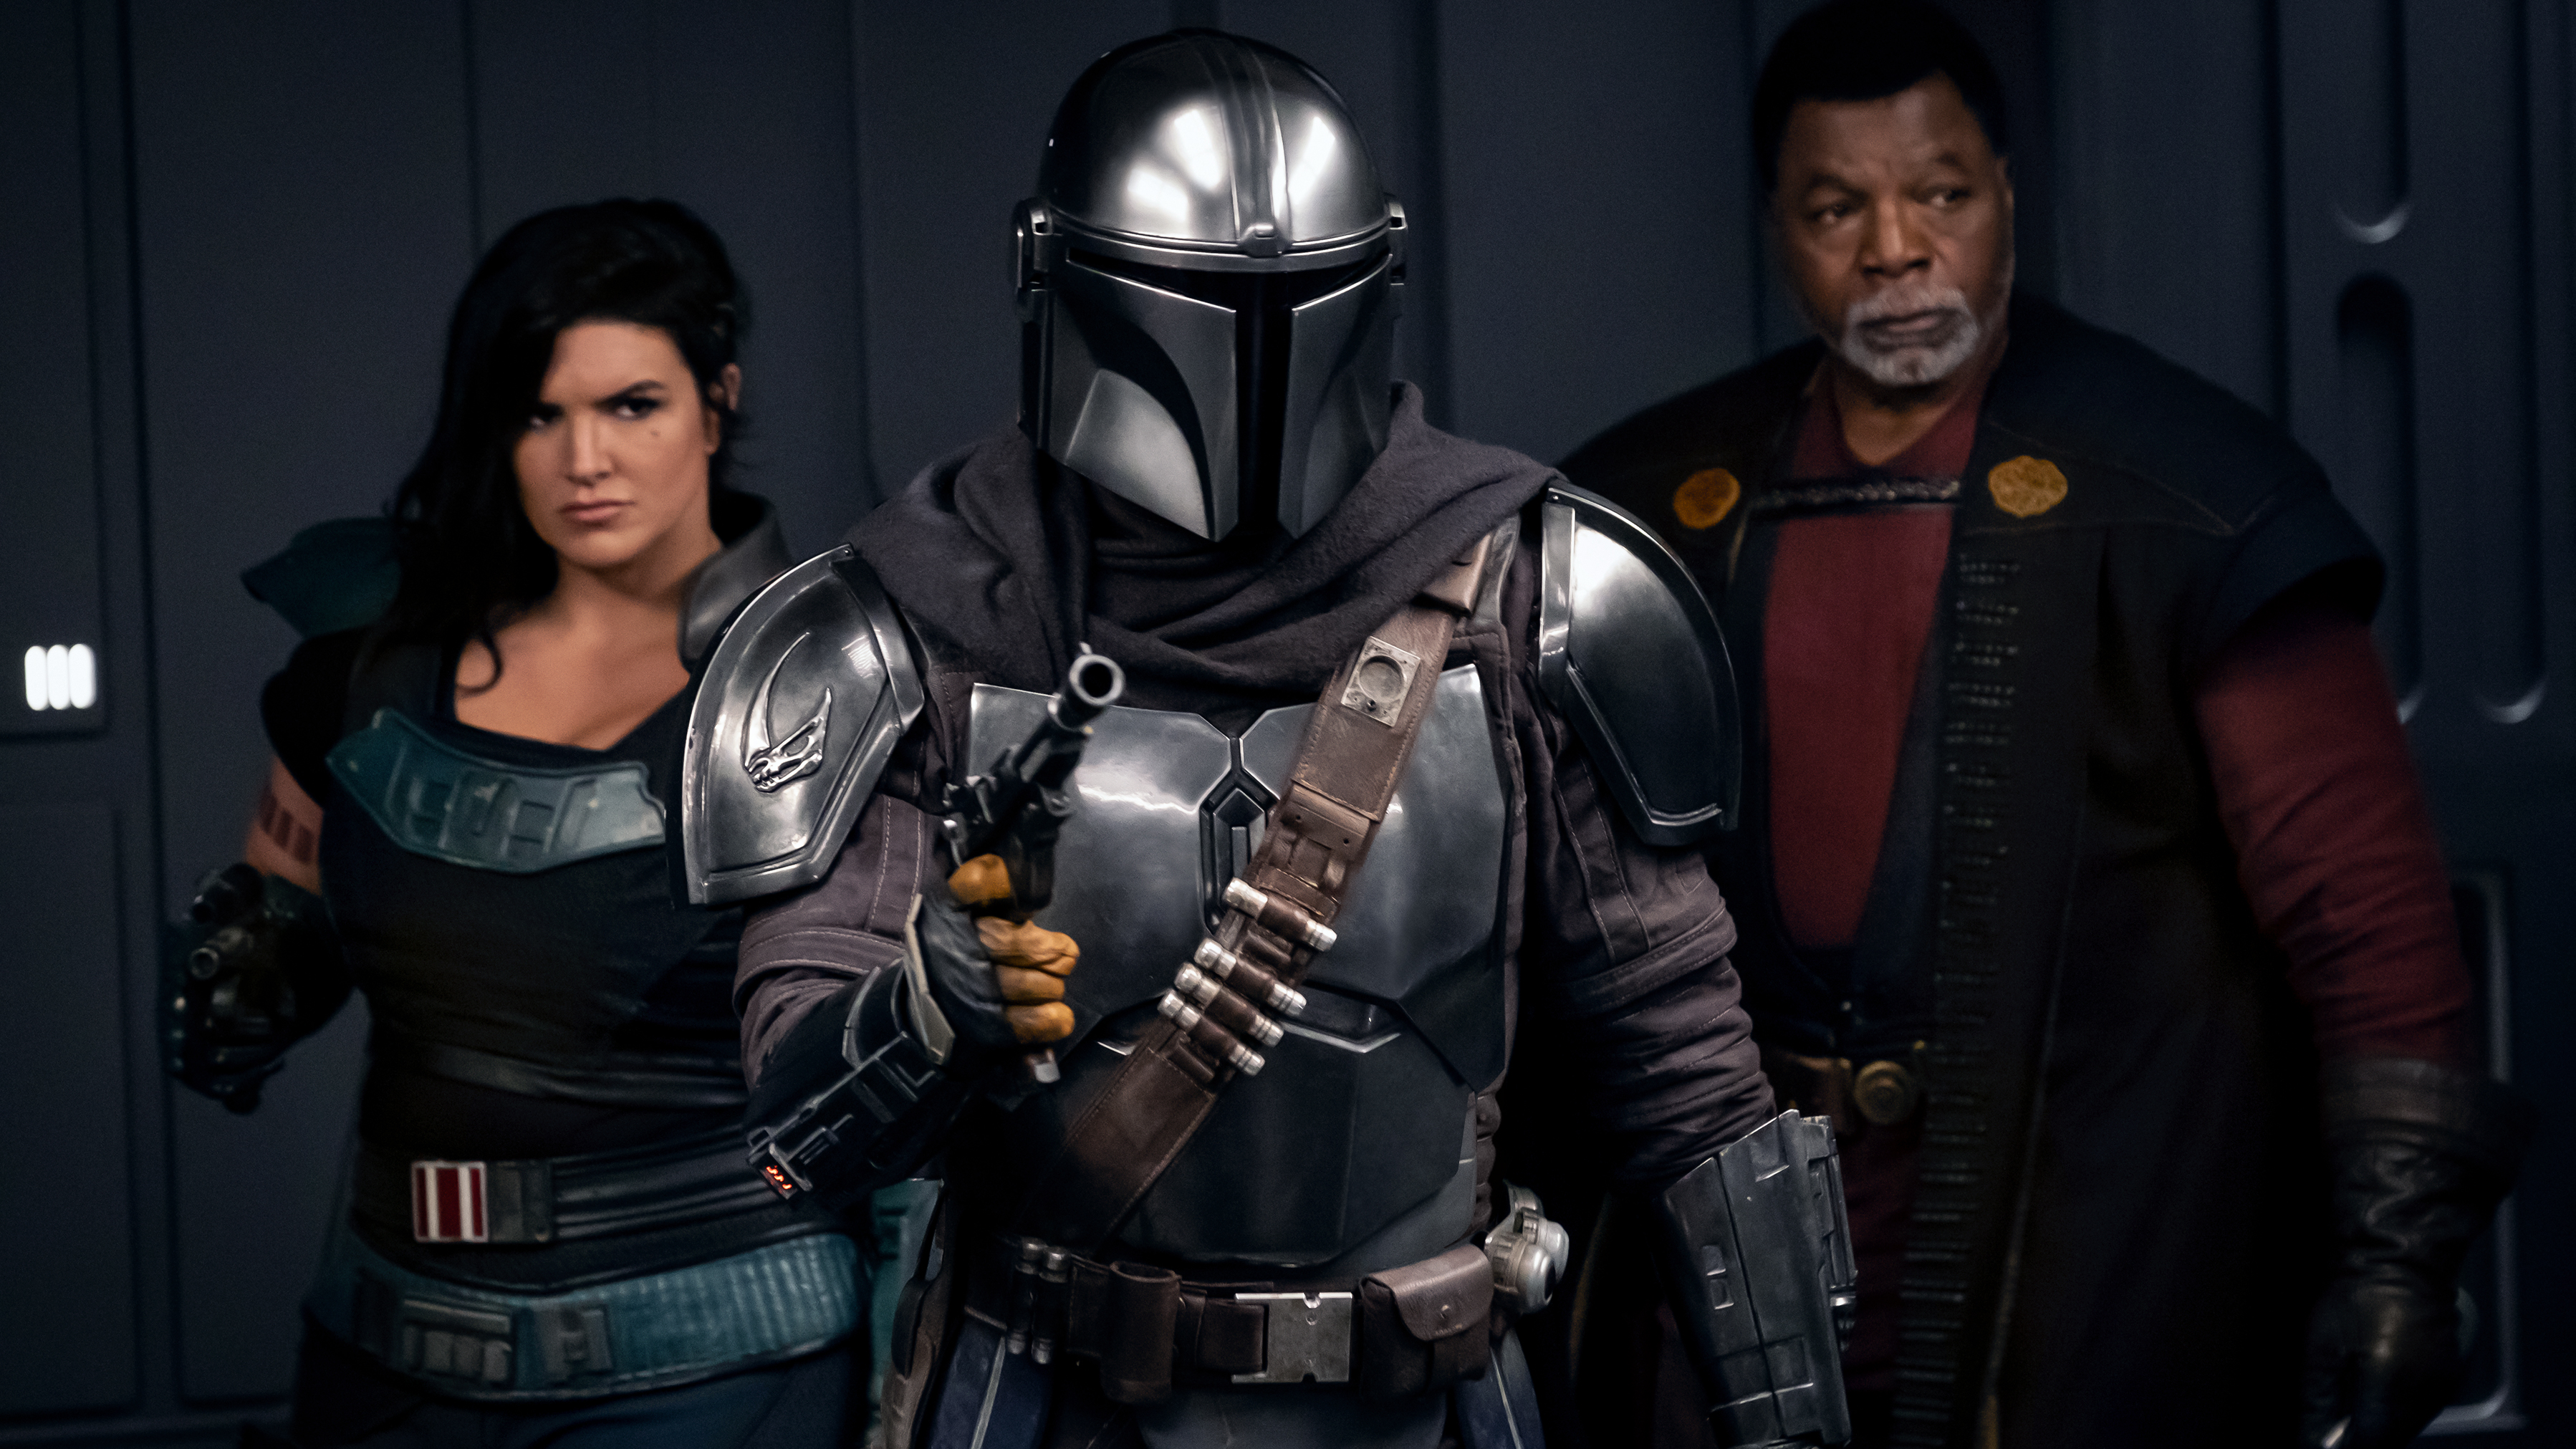 The Mandalorian Season 2 Release Date Trailer Cast And What We Know Techradar